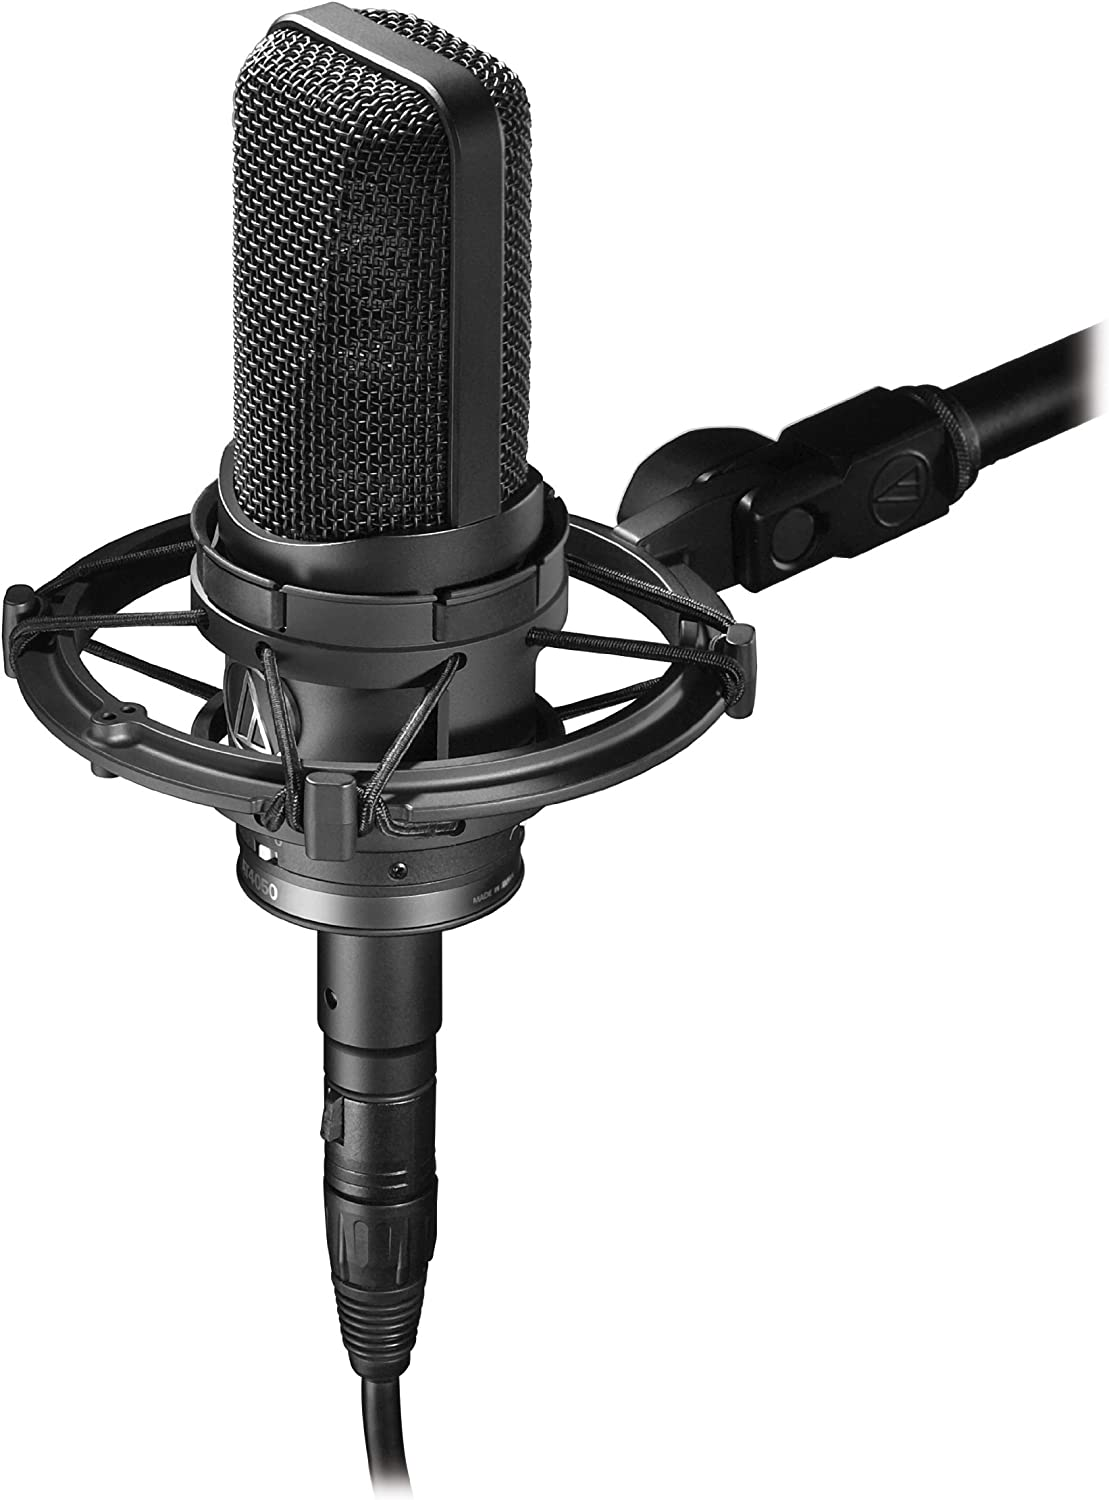 Audio-Technica AT4050 Multi-Pattern Condenser Mic